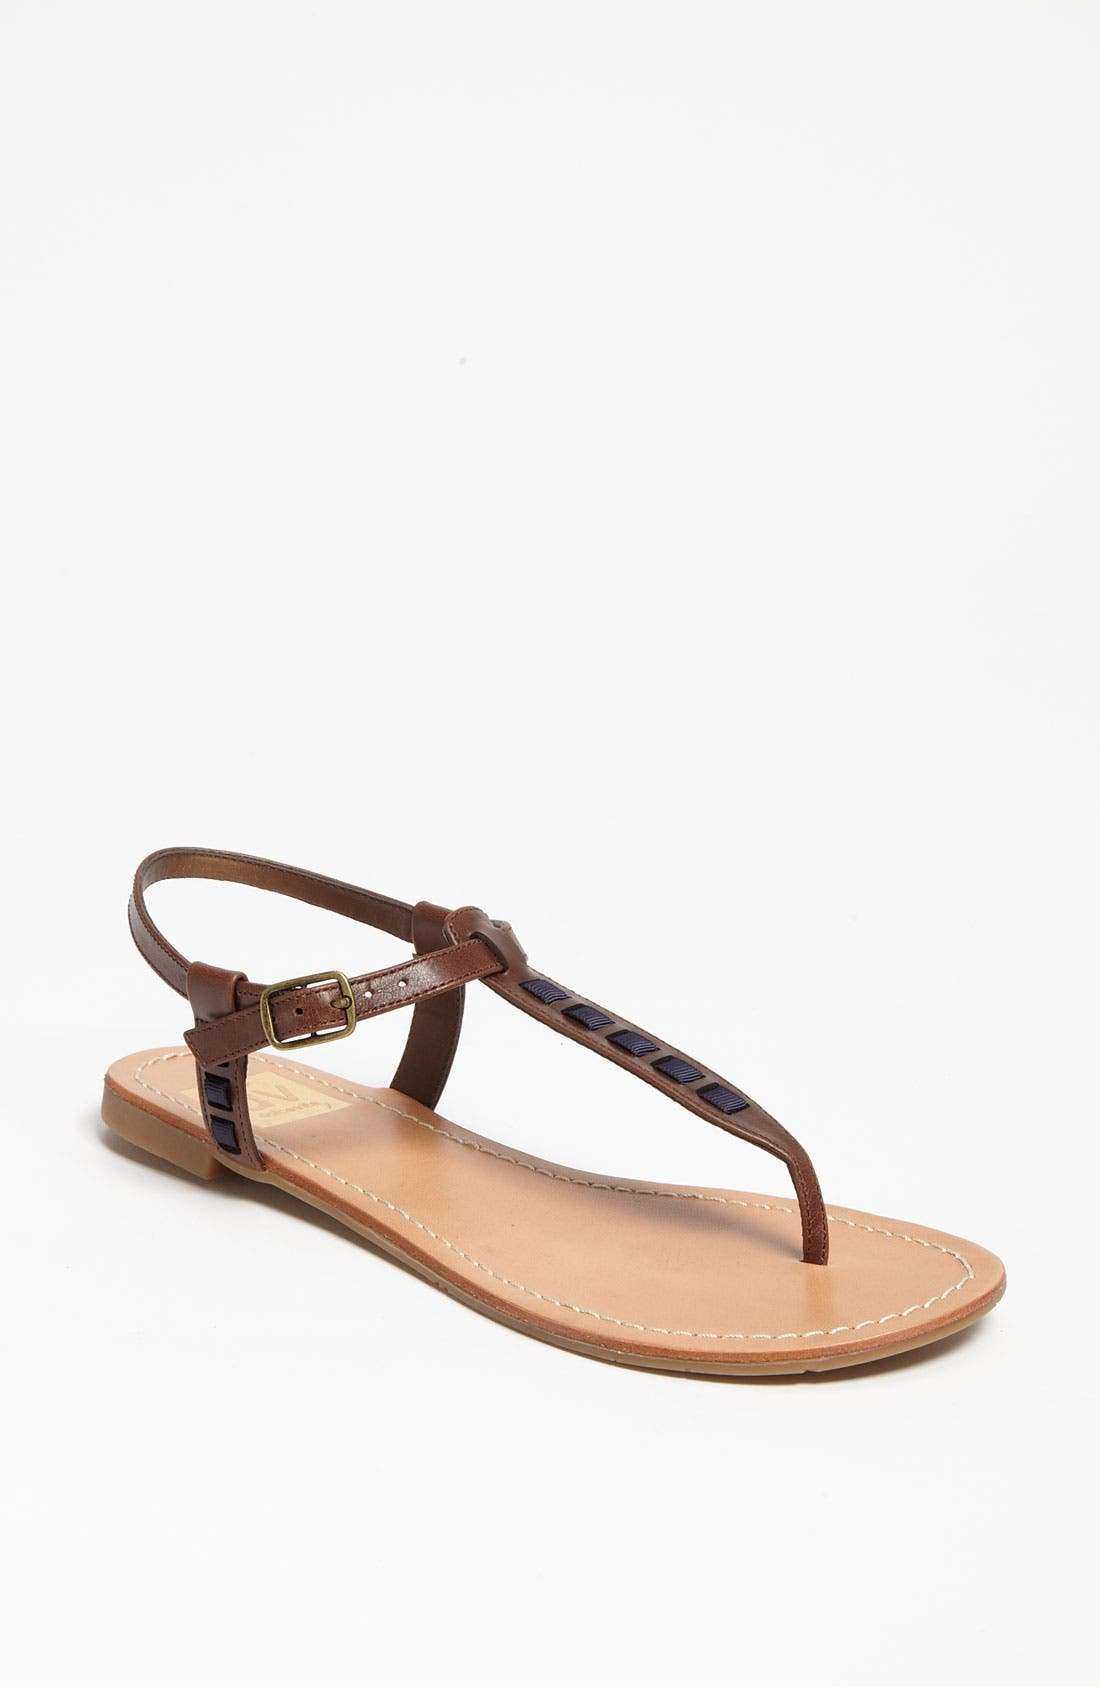 Main Image - DV by Dolce Vita 'Dawn' Sandal